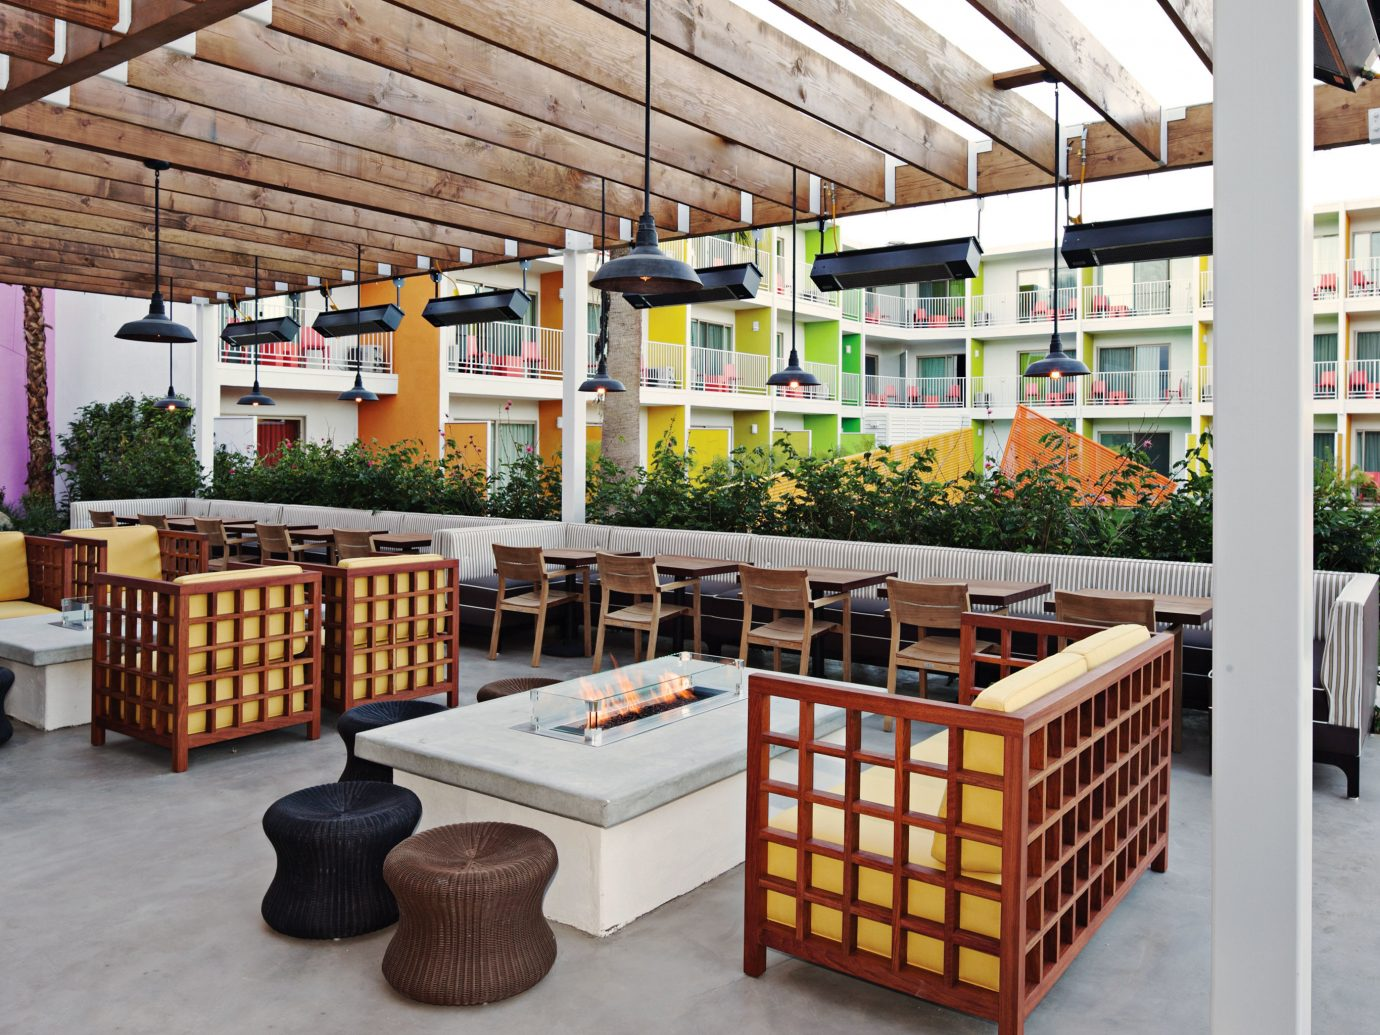 Bath Deck Dining Drink Eat Exterior Grounds Hip Hotels Lounge Modern Nightlife Patio Play Pool Romance indoor floor outdoor structure stall retail grocery store furniture